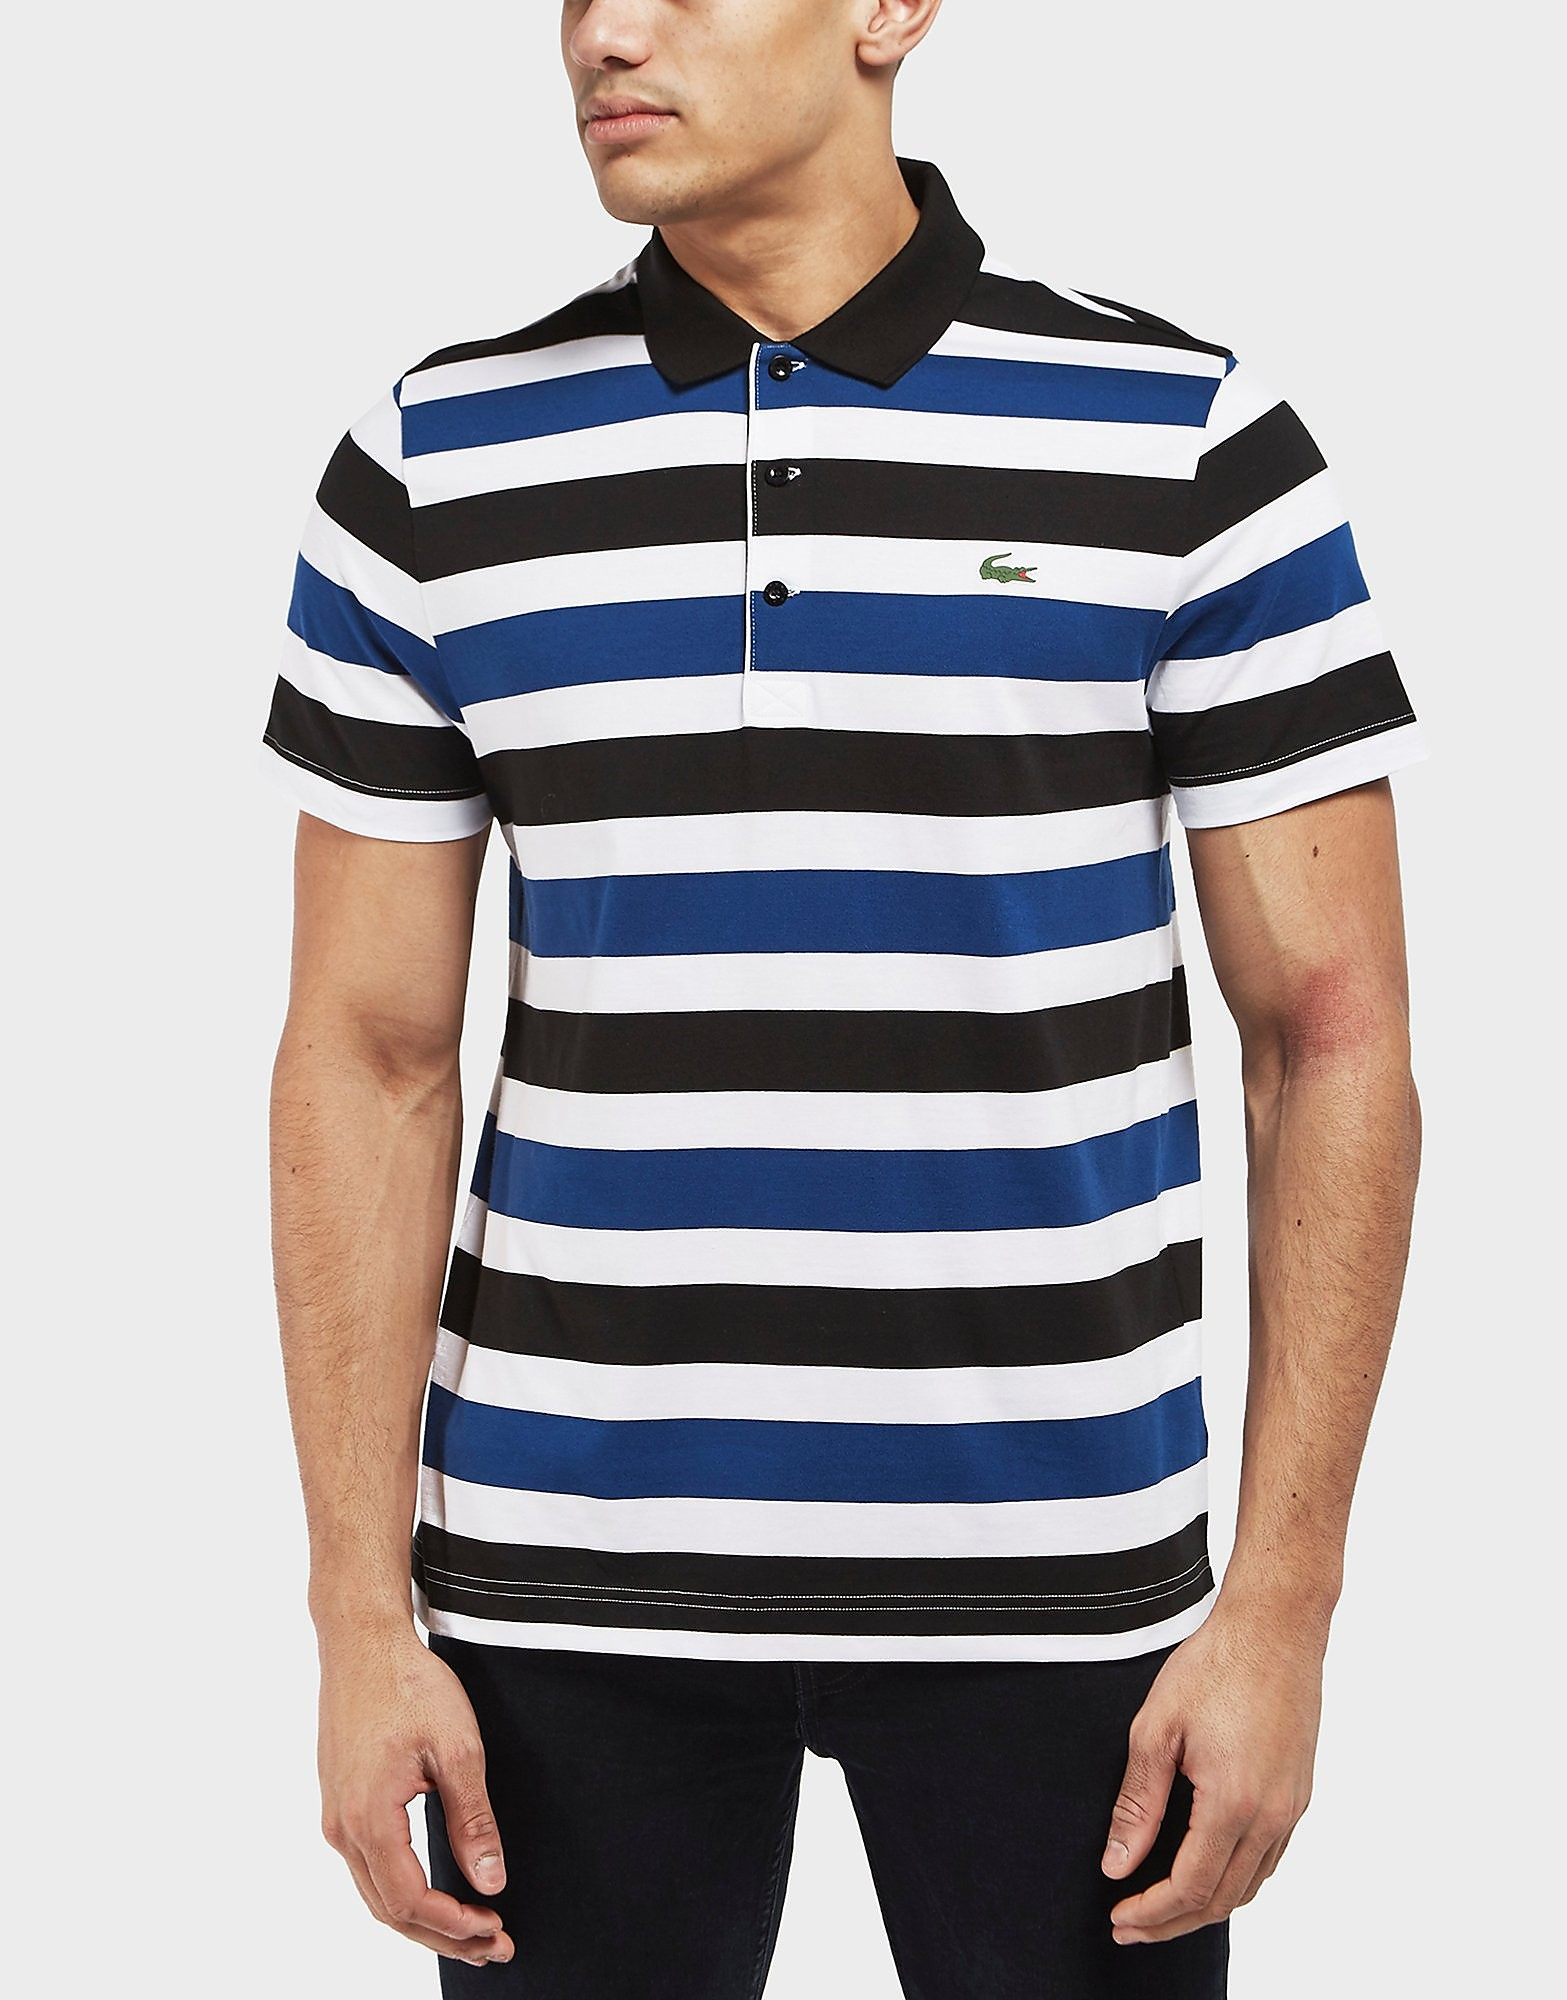 Lacoste Stripe Jersey Short Sleeve Polo Shirt